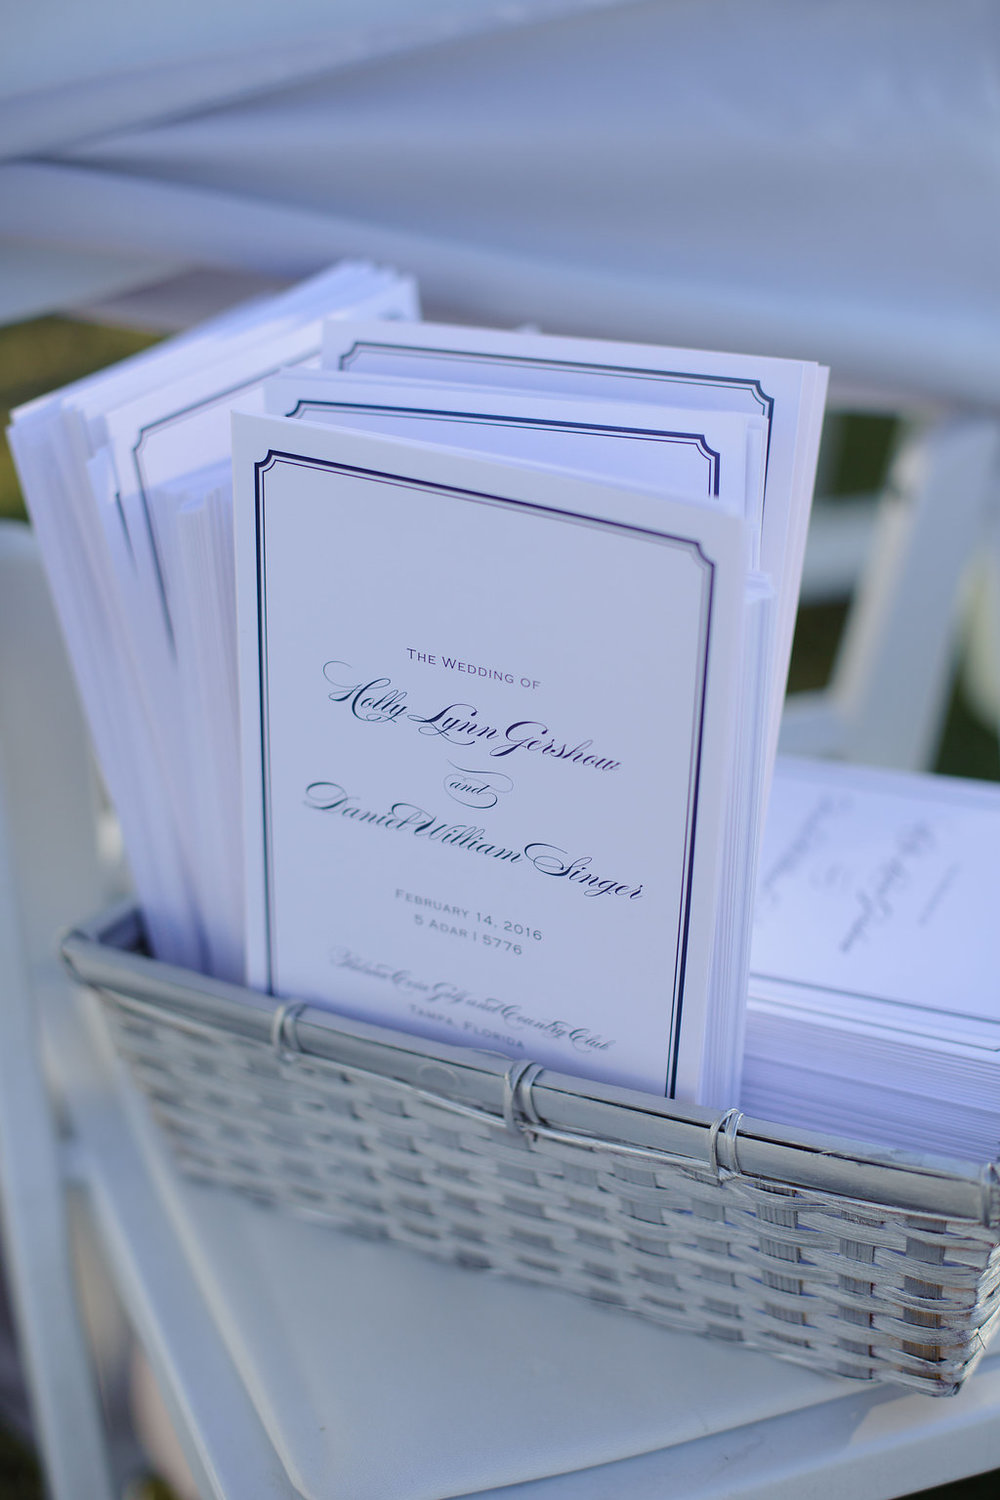 Custom Crane ceremony programs, with the same beautiful navy script as the invitations, were provided to guests during the ceremony.